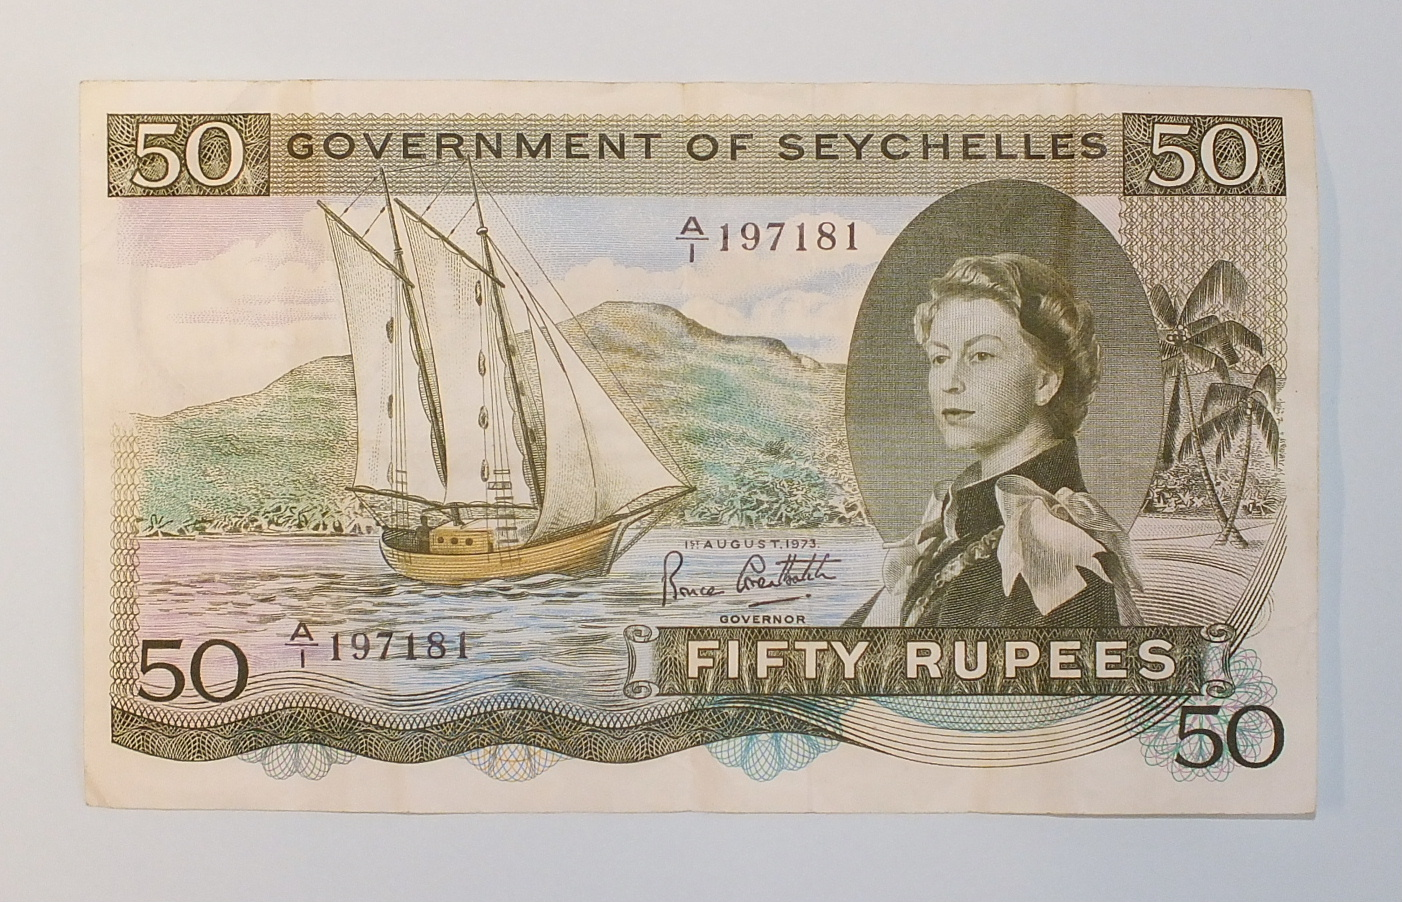 Lot 85 - A Government of Seychelles 50 rupees bank note, A/1 197181, dated 1st August 1973, centre crease.